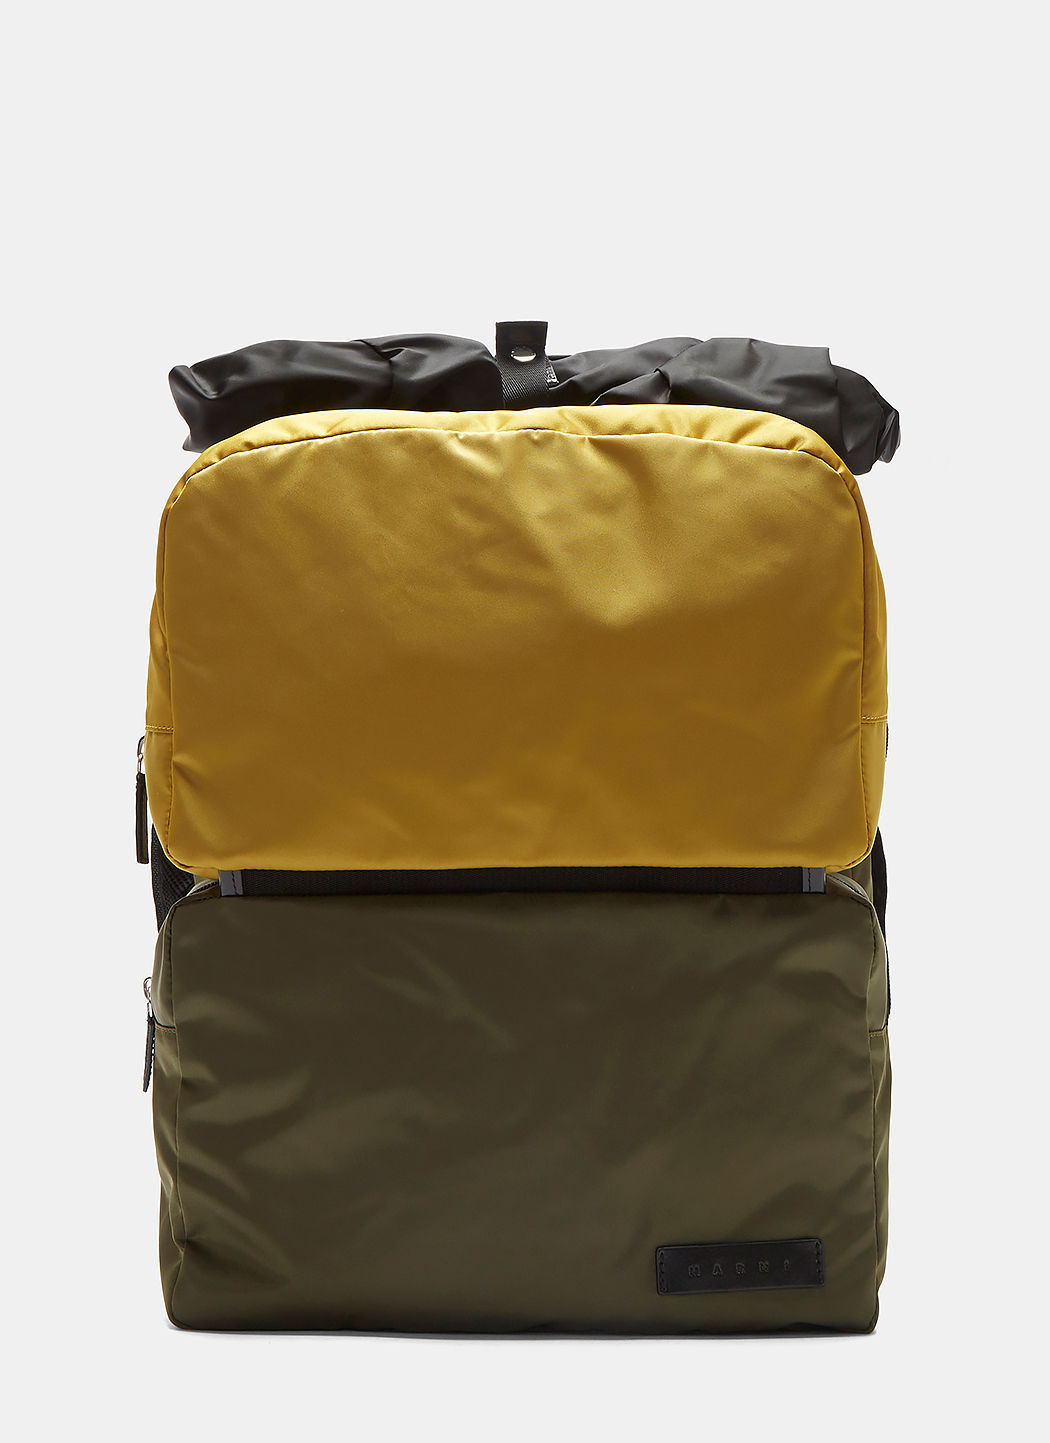 Marni Detachable Cargo Pocket Backpack In Khaki And Mustard